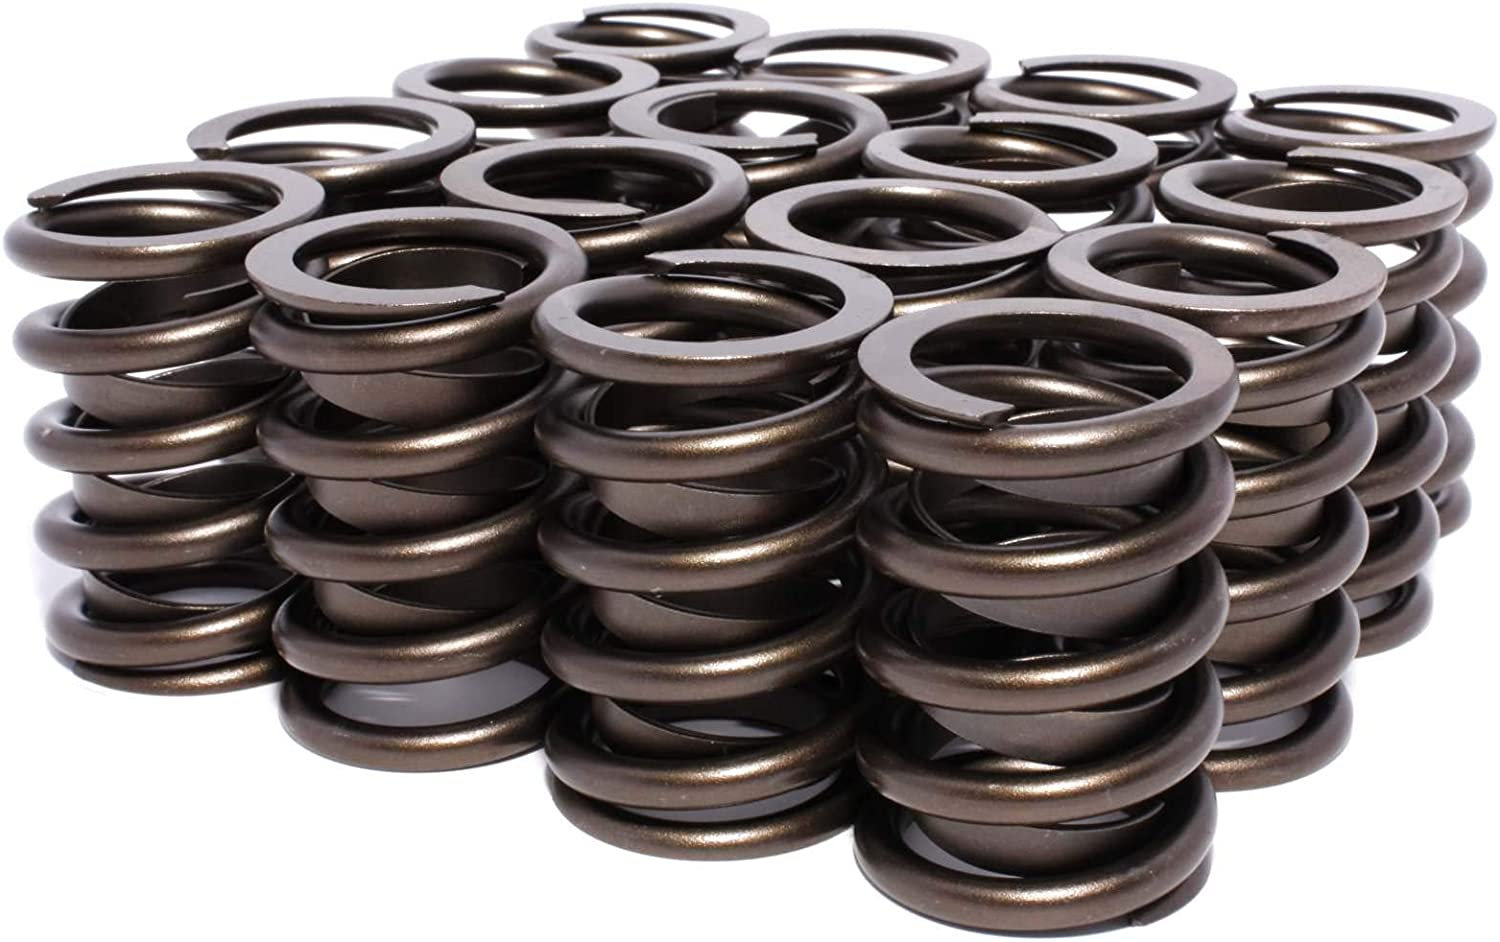 COMP Cams Max 60% OFF trend rank 910-16 Springs Single Valve